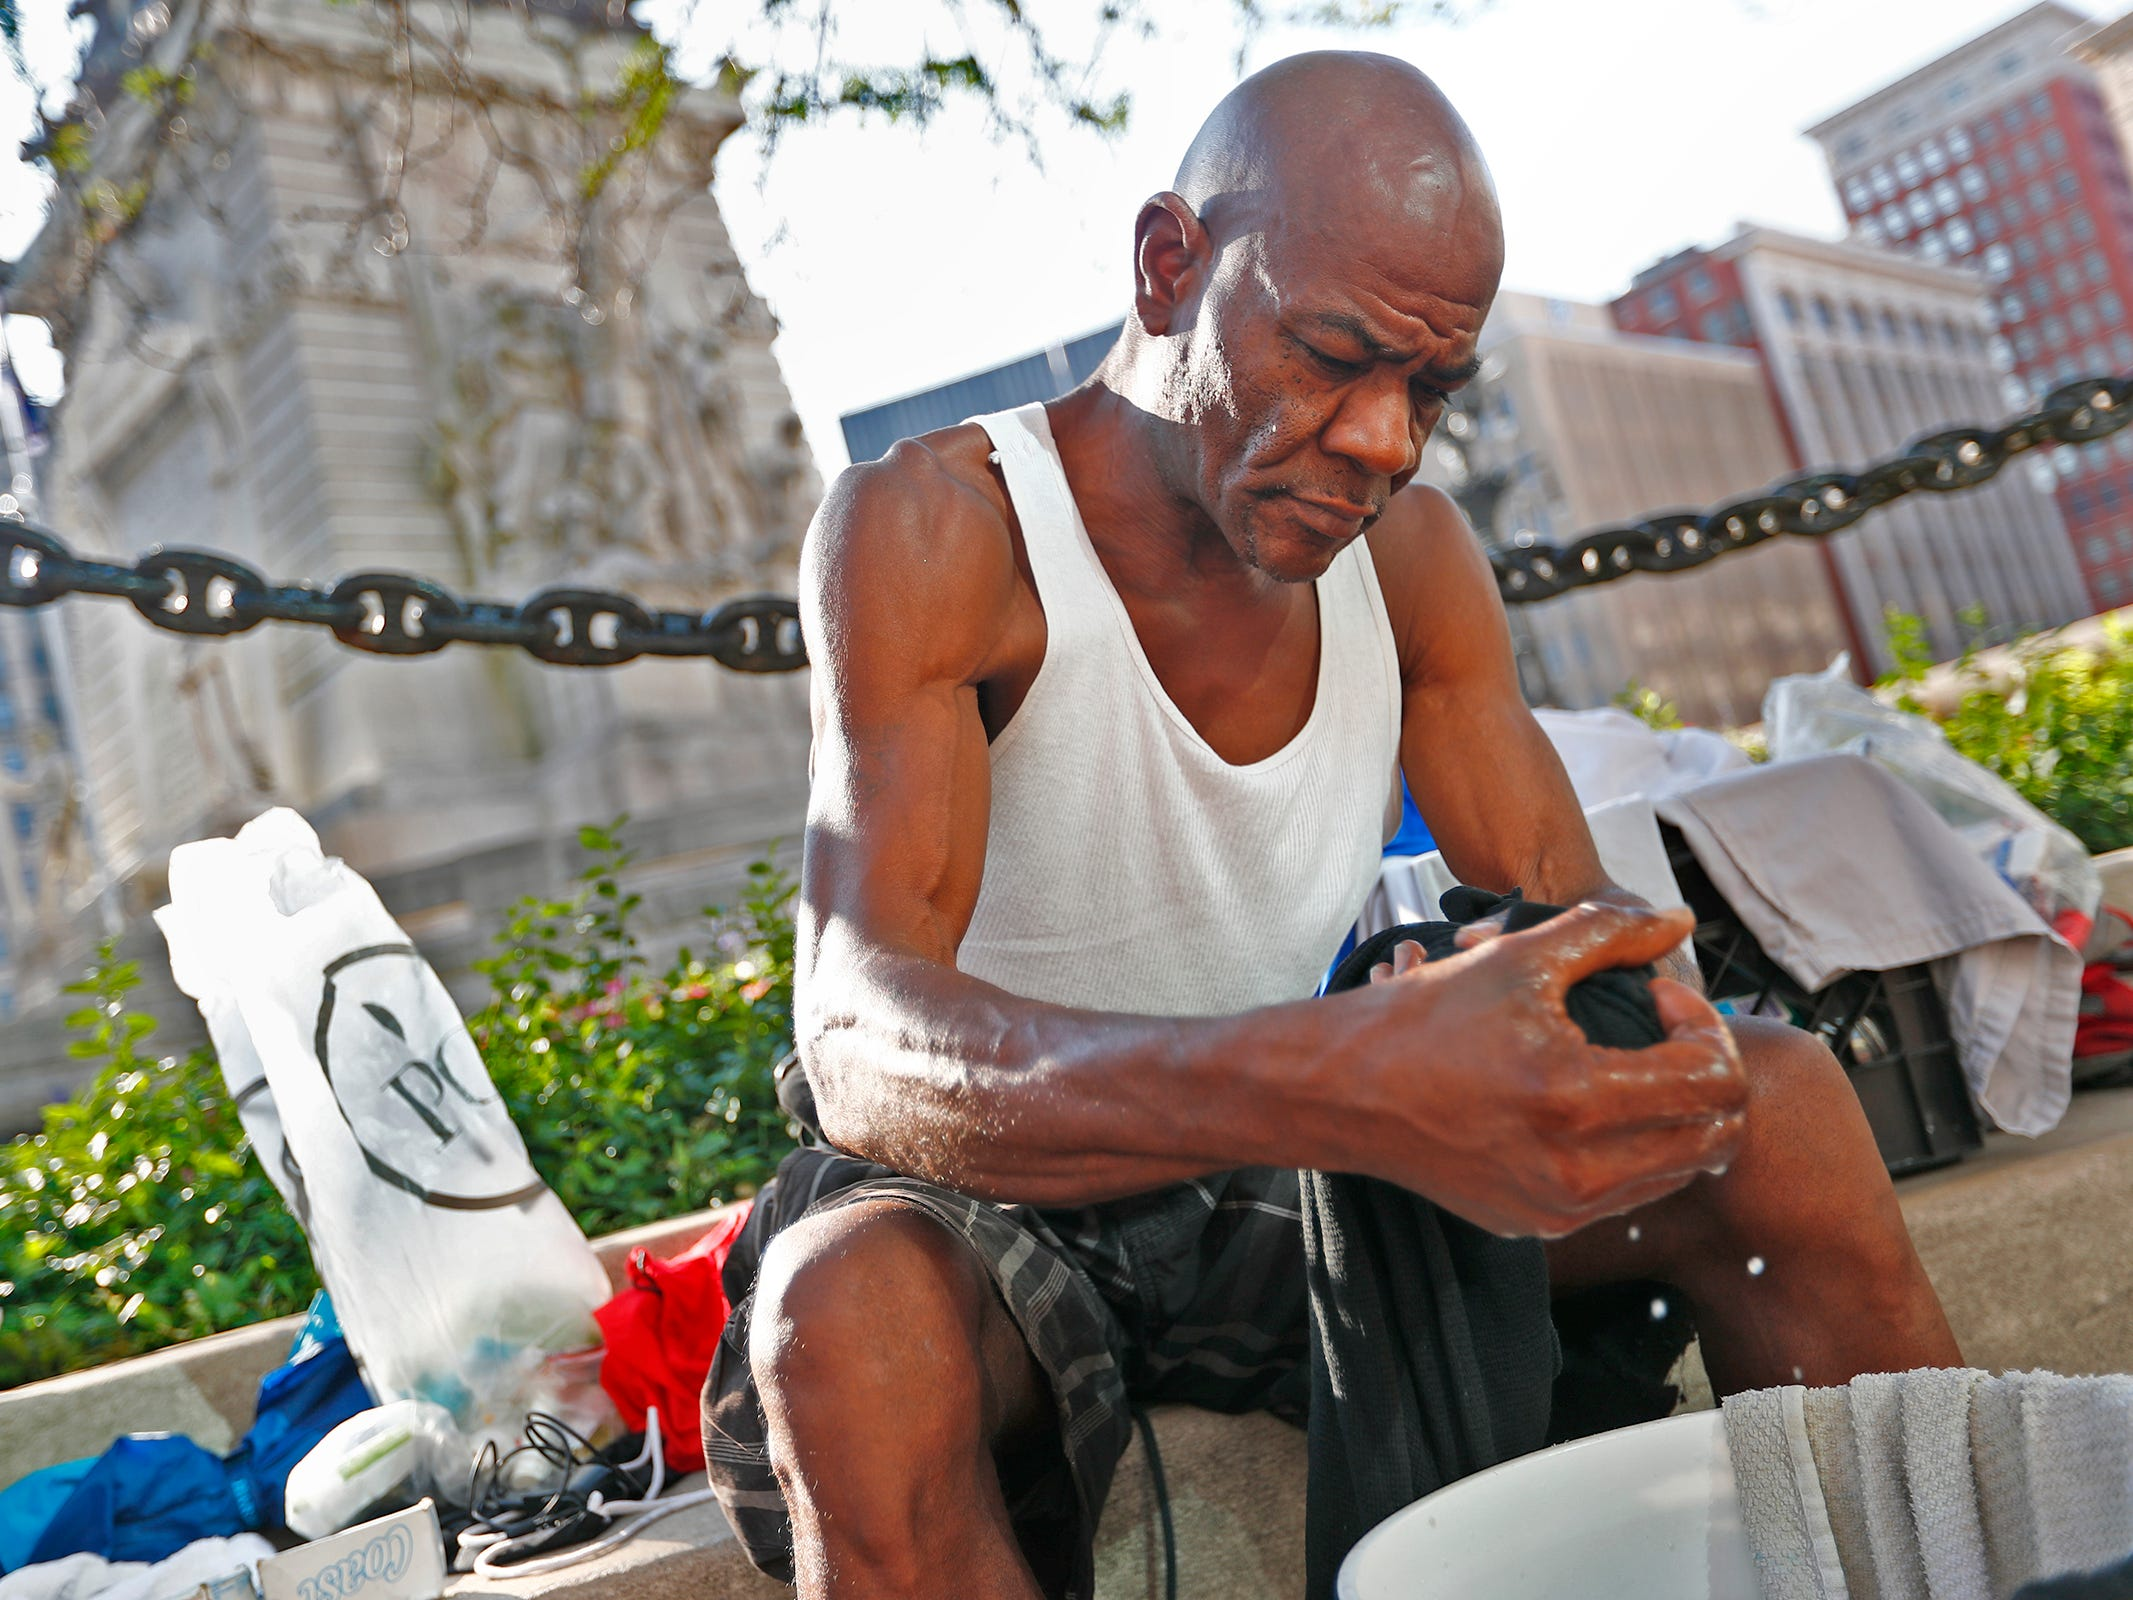 "Glenn Hudgins, a homeless man, does his laundry on Monument Circle, in downtown Indianapolis, Thursday, Aug. 9, 2018.  He says he has been homeless for about 4 years.   ""Everyone knows me, in a good way,"" he says about keeping himself clean, doing work when offered, and staying away from drink and drugs.  Coalition for Homelessness Intervention & Prevention (CHIP) and the city of Indianapolis have proposed a plan to end homelessness in the city by 2023."